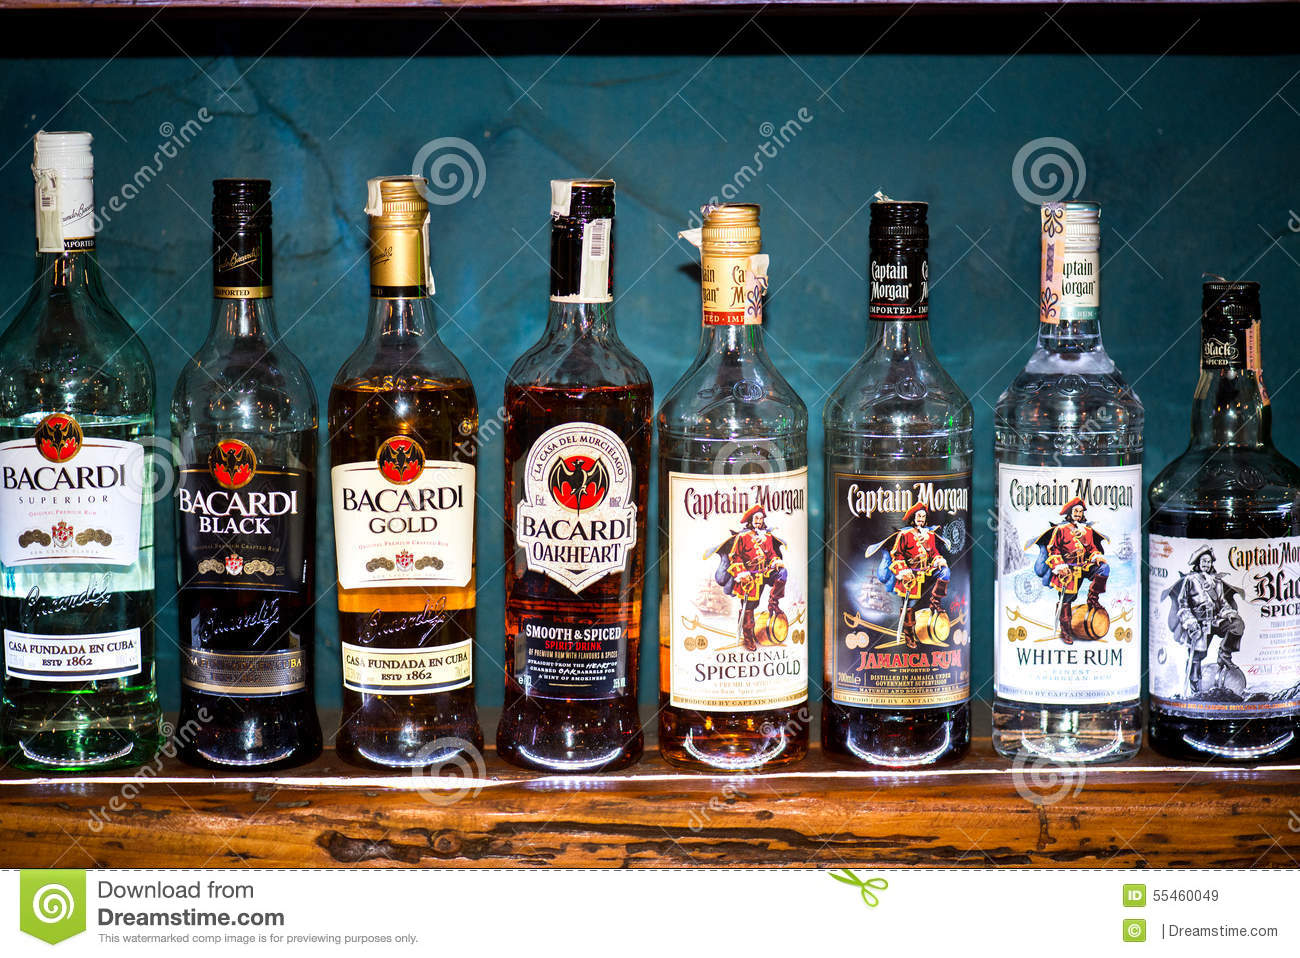 How Bacardi Plans to 'Dominate' Rum Once Again